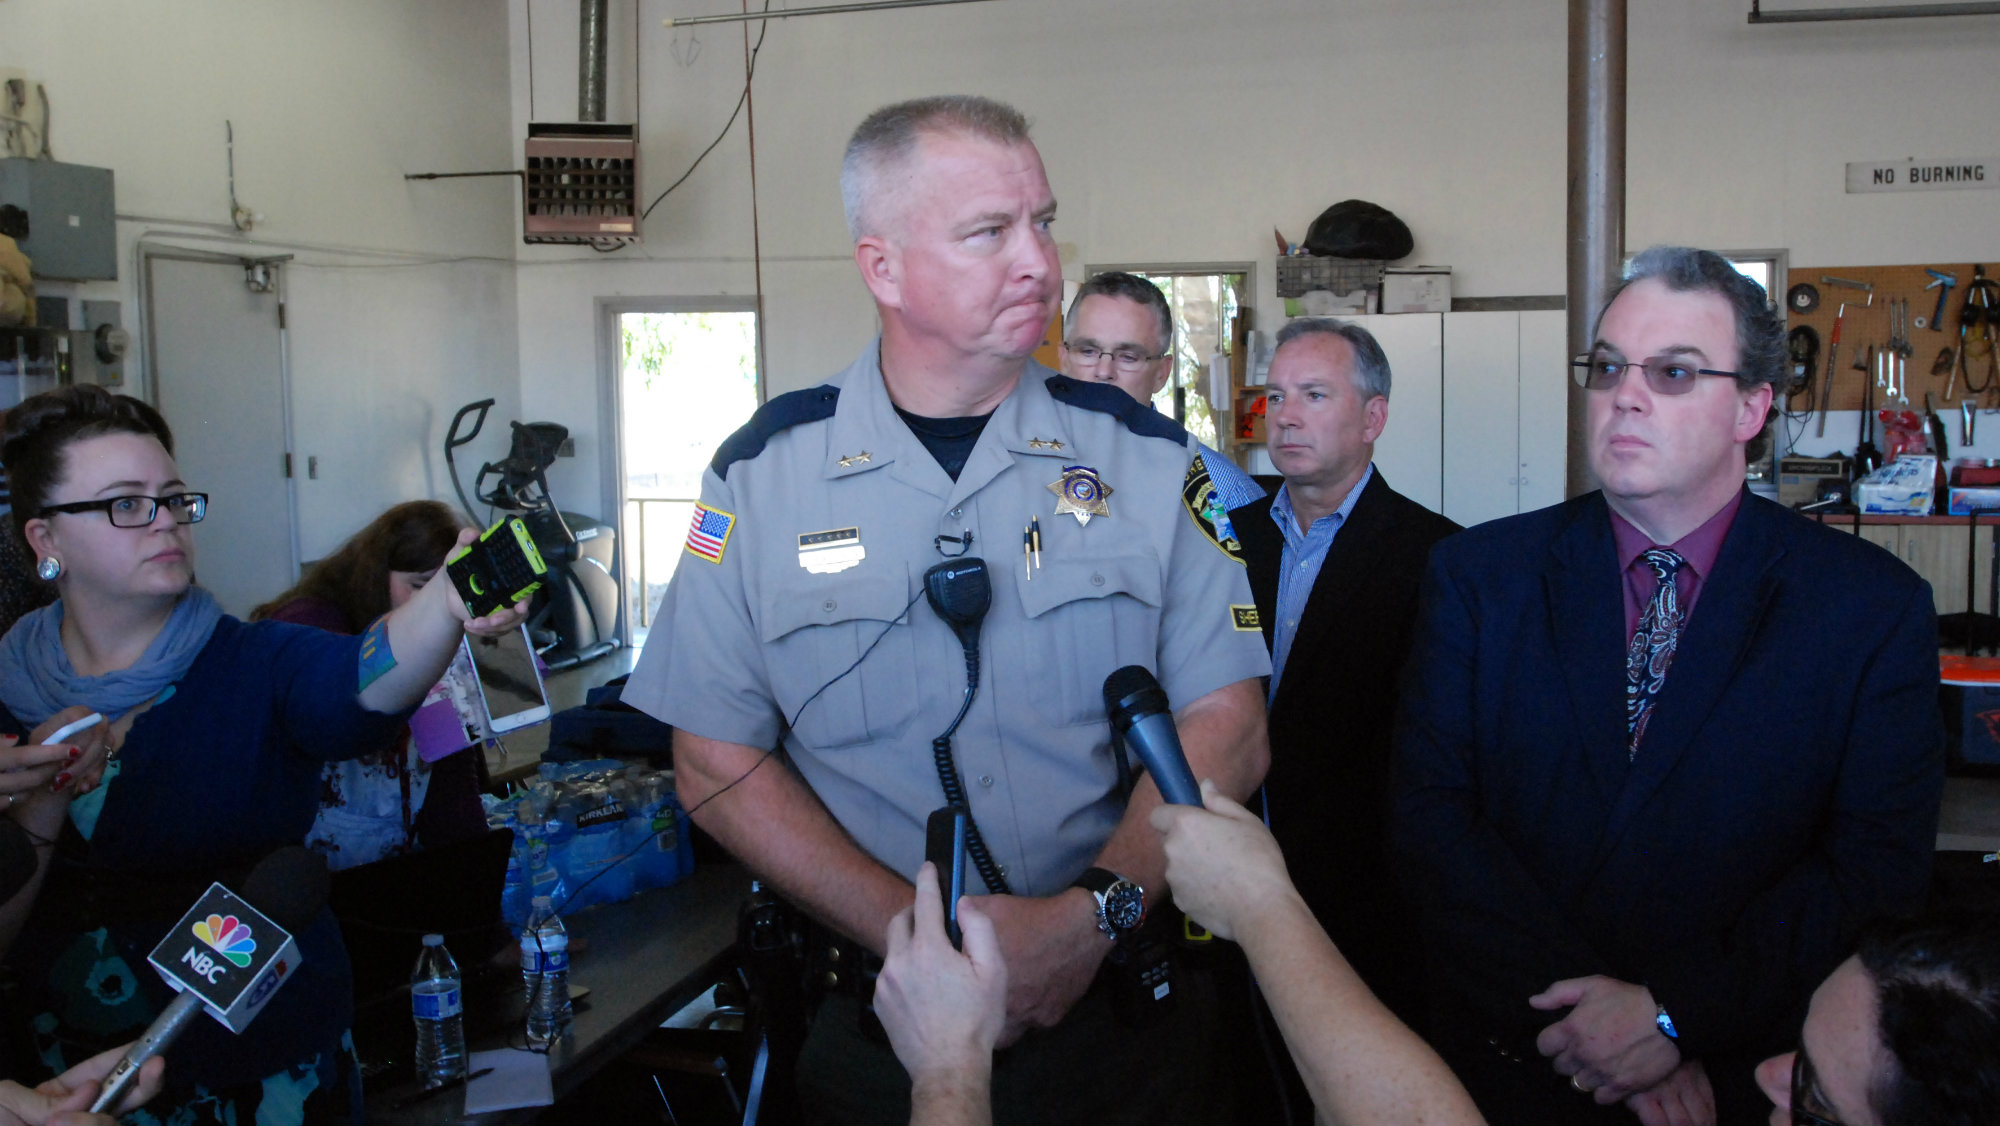 Douglas County Sheriff John Hanlin addresses the media following a deadly shooting at Umpqua Community College in Roseburg, Ore., Thursday, Oct. 1, 2015.